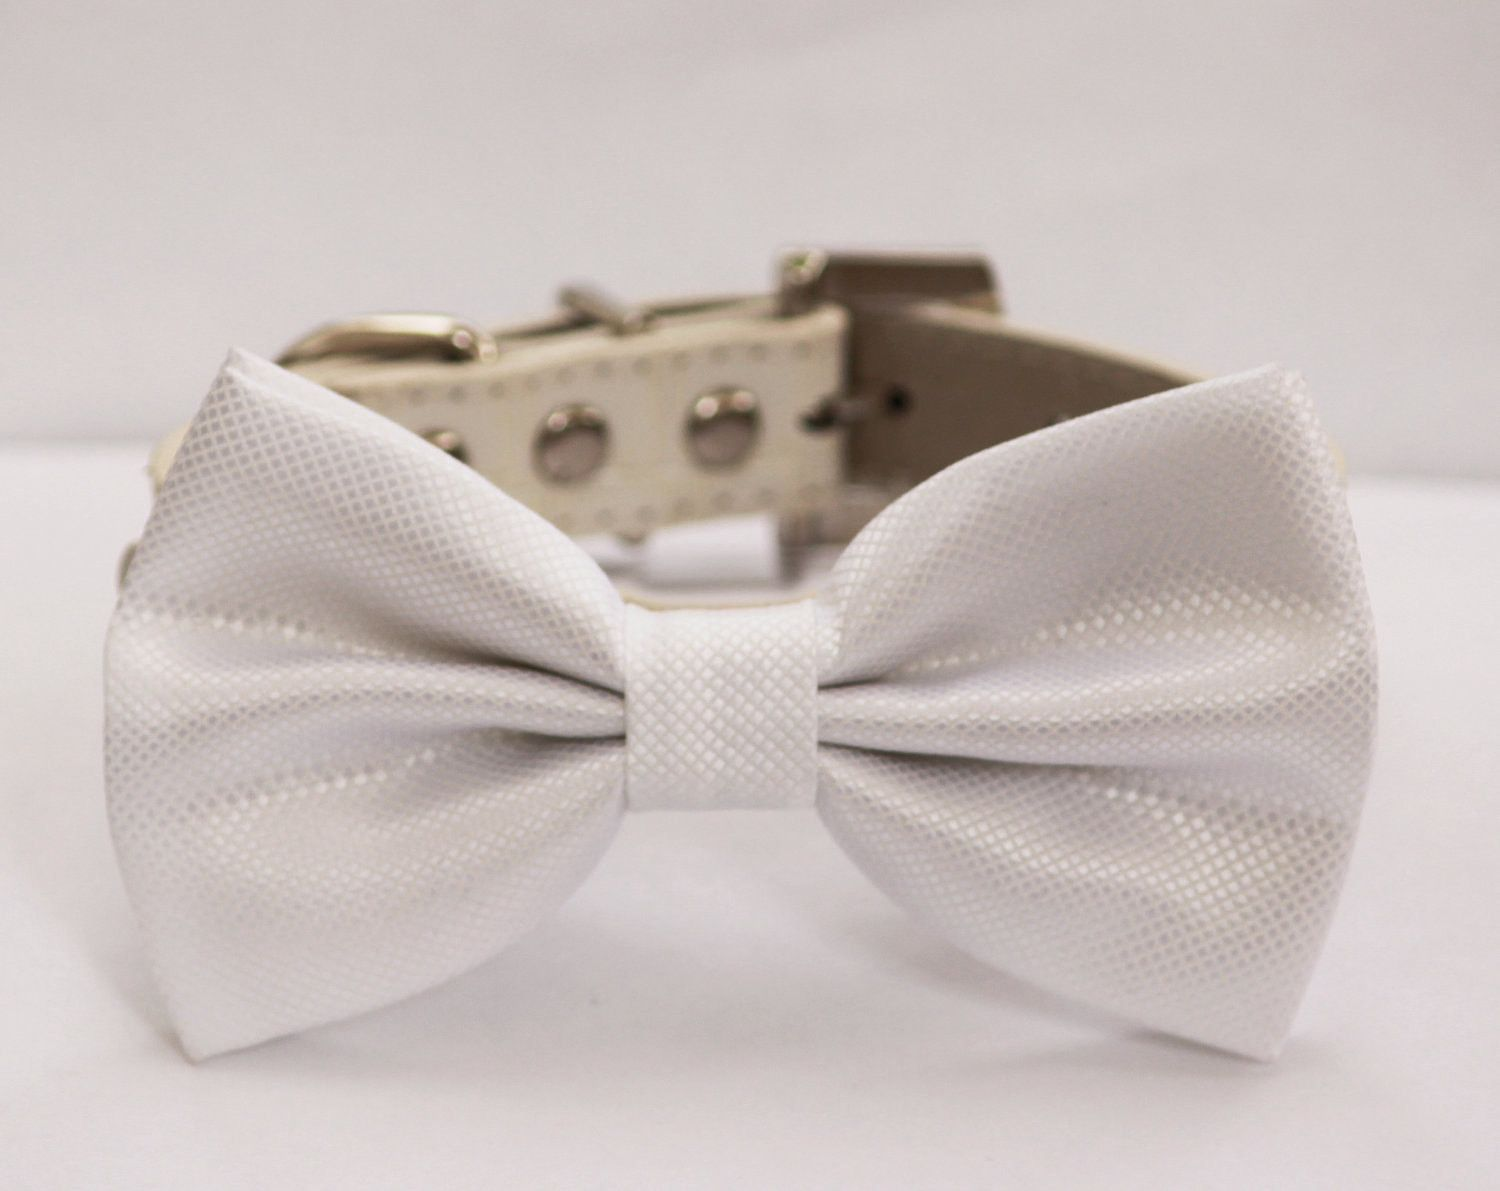 Beautiful Collar Bow Adorable Dog - 29c401cfbec319c77d25a9b84c224ff6  HD_216745  .jpg